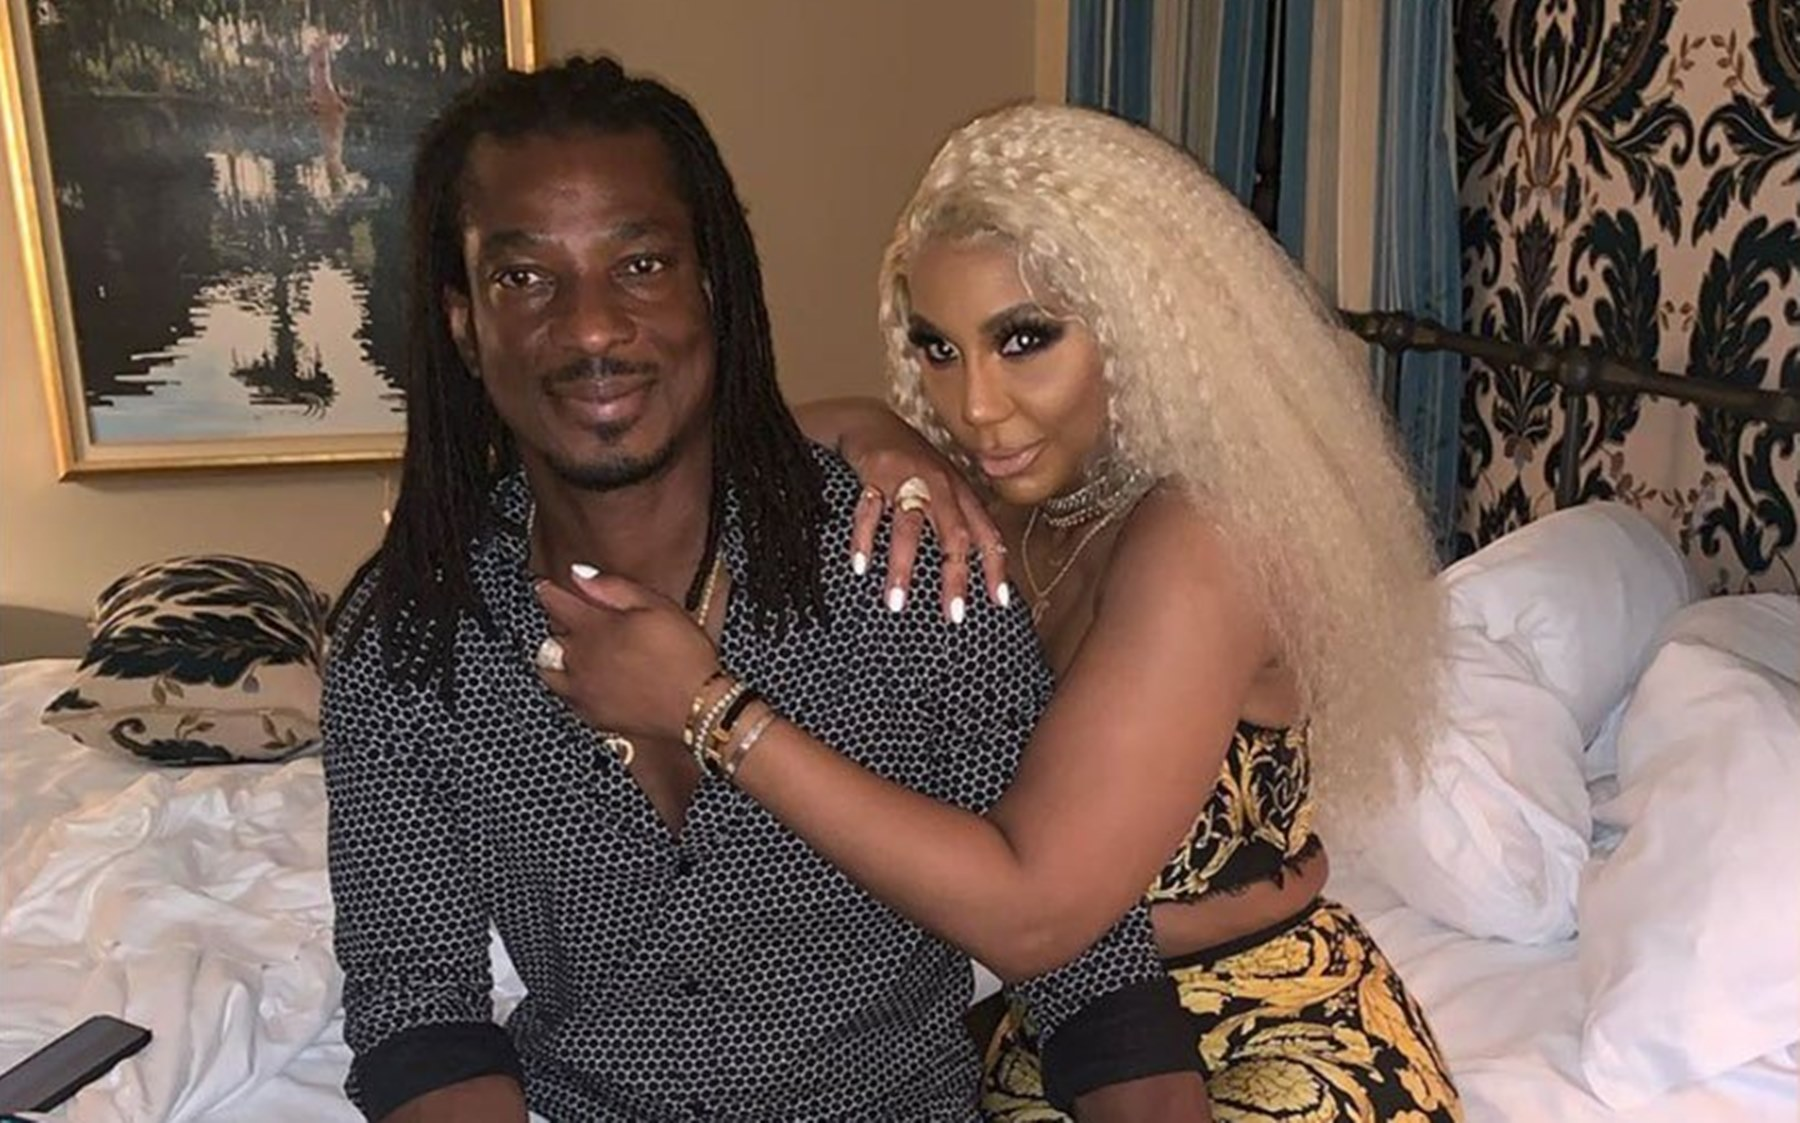 Tamar Braxton's BF, David Adefeso, Reveals An Africa Immigrant's Journey To Success In America